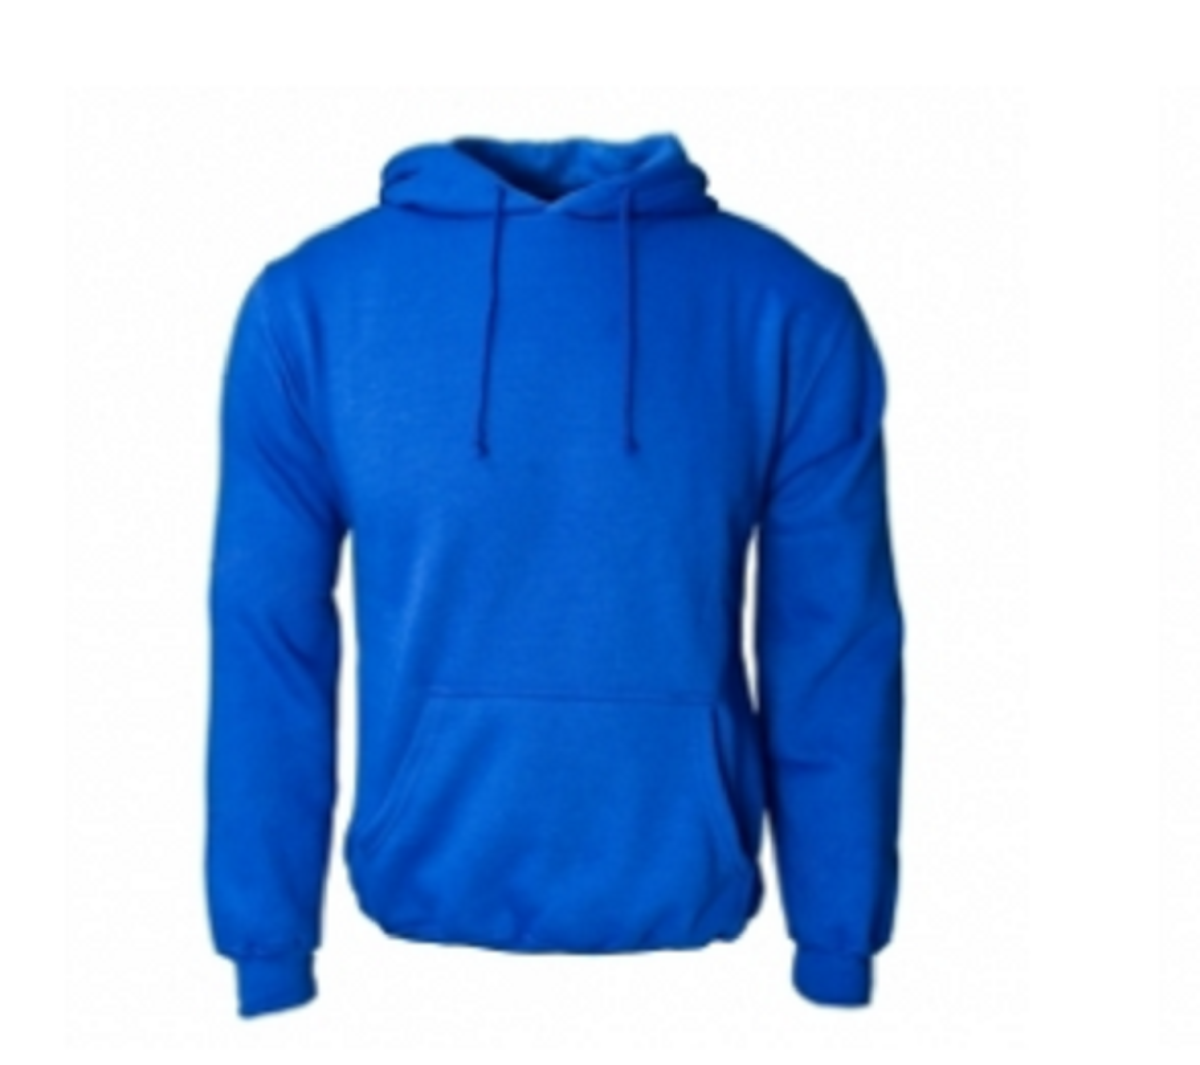 Men's Hoodies Blue Color Full sleeves Model No TSI­5001